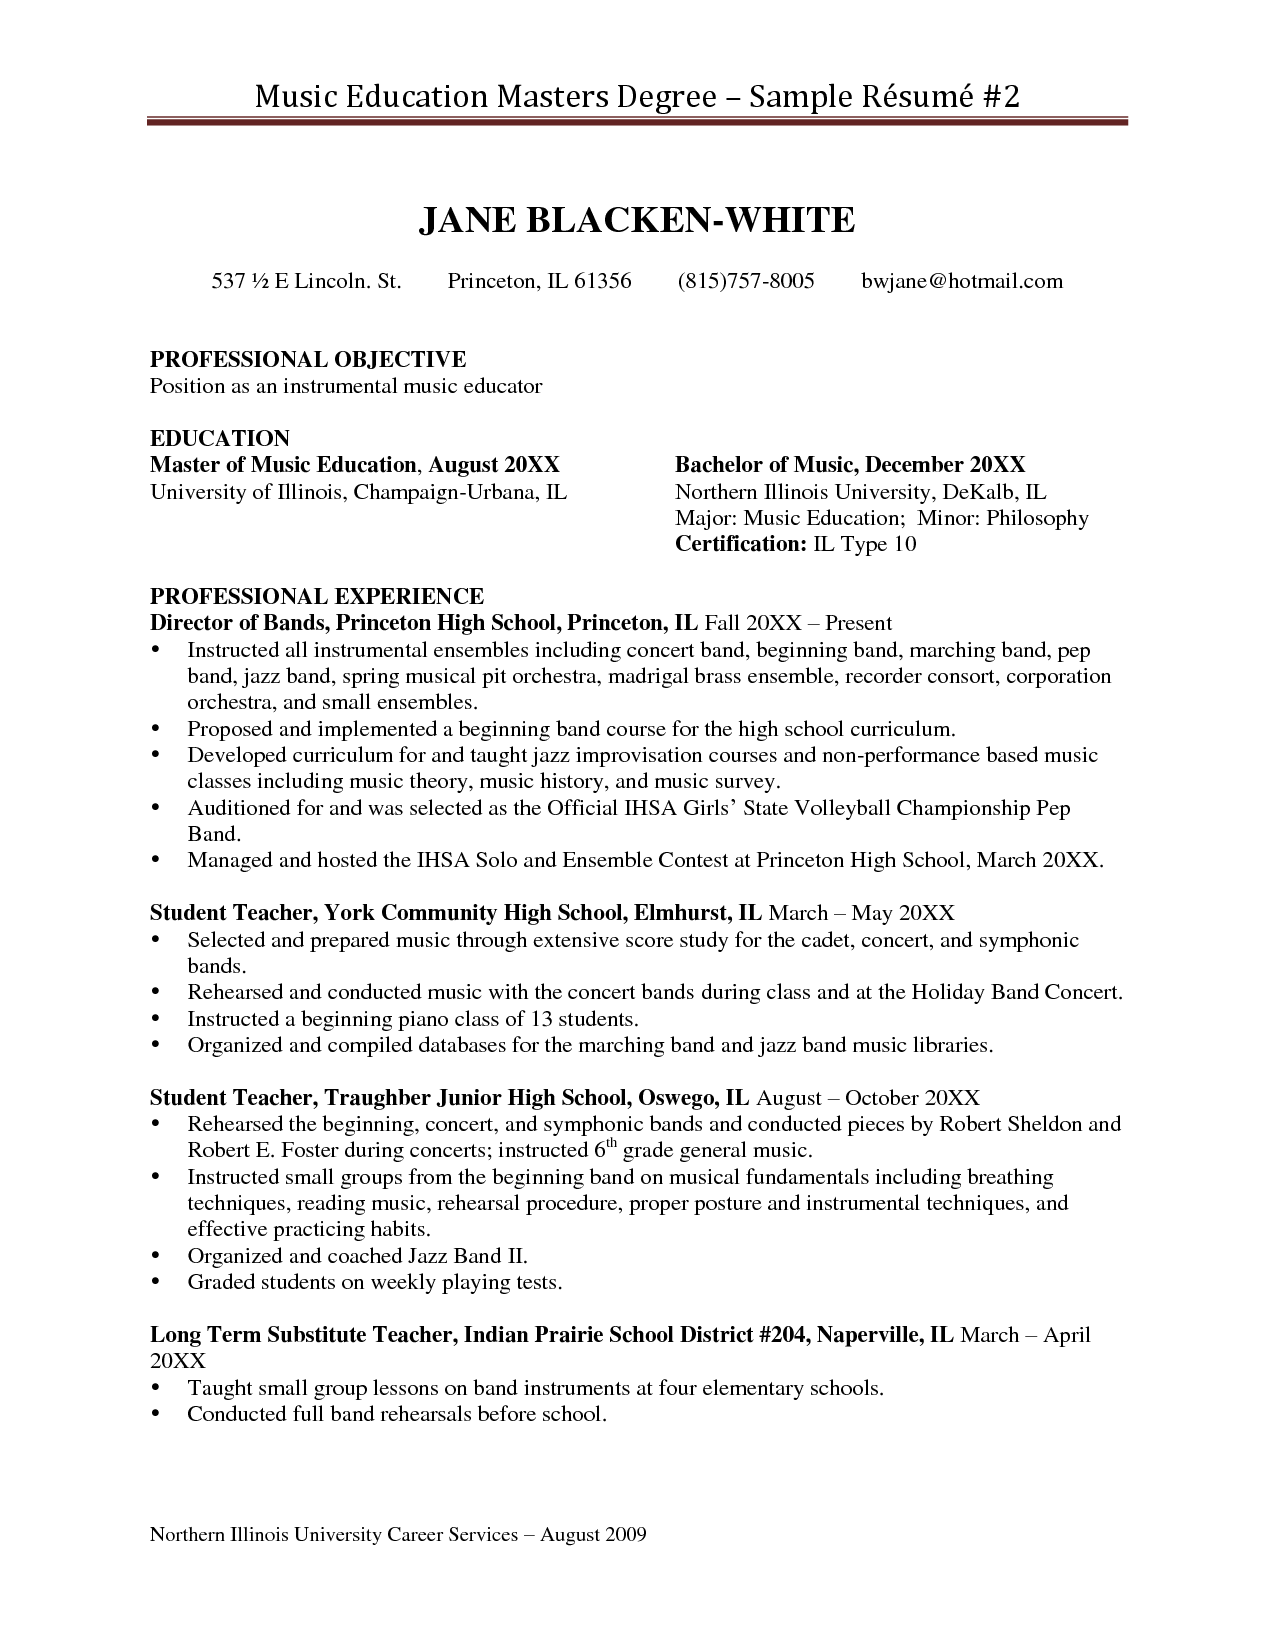 resume How To Write A Graduate School Resume graduate school resume example httpwww resumecareer info infograduate